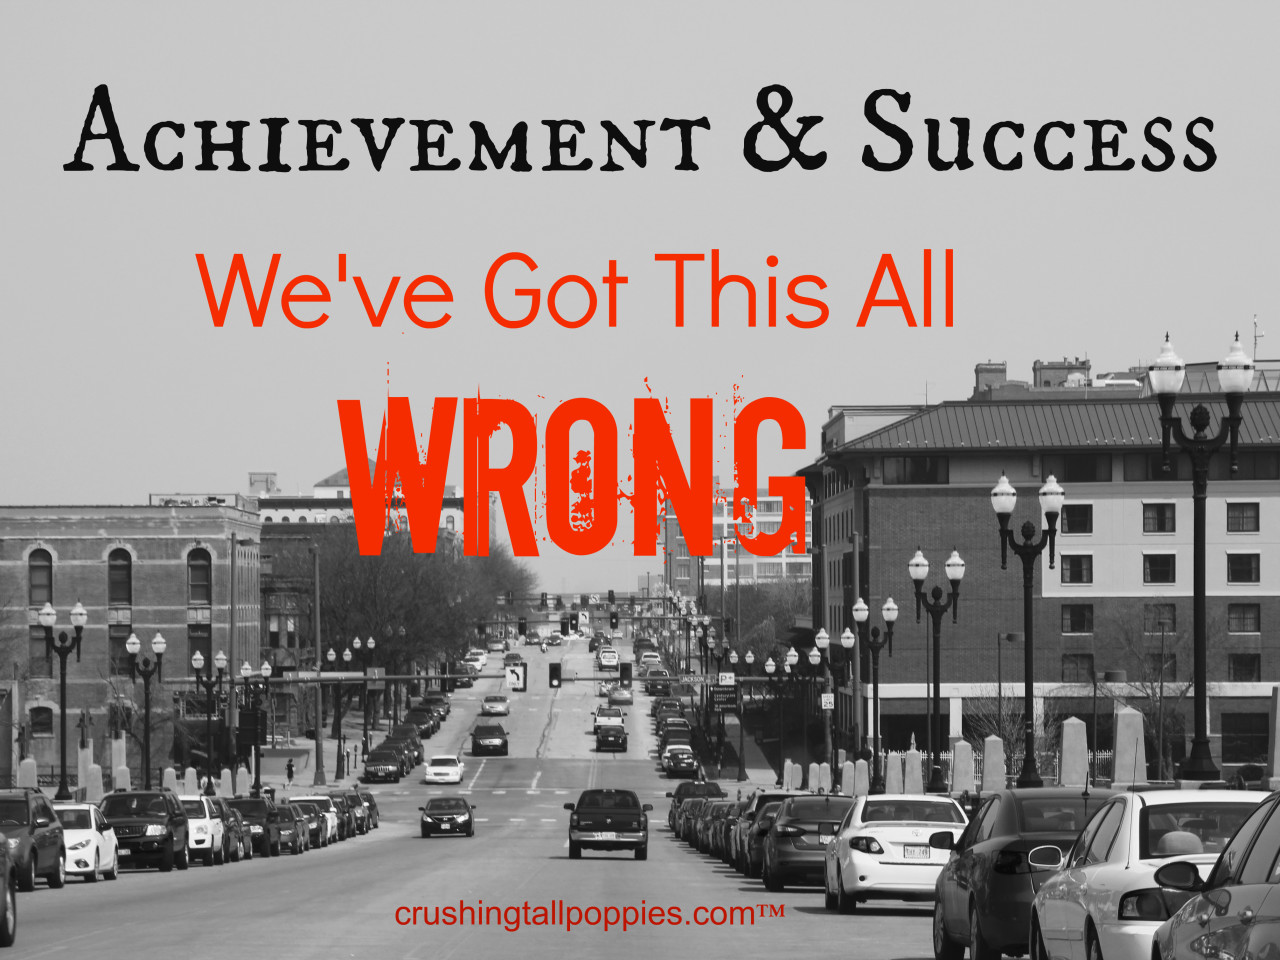 Achievement & Success. We've Got This All Wrong